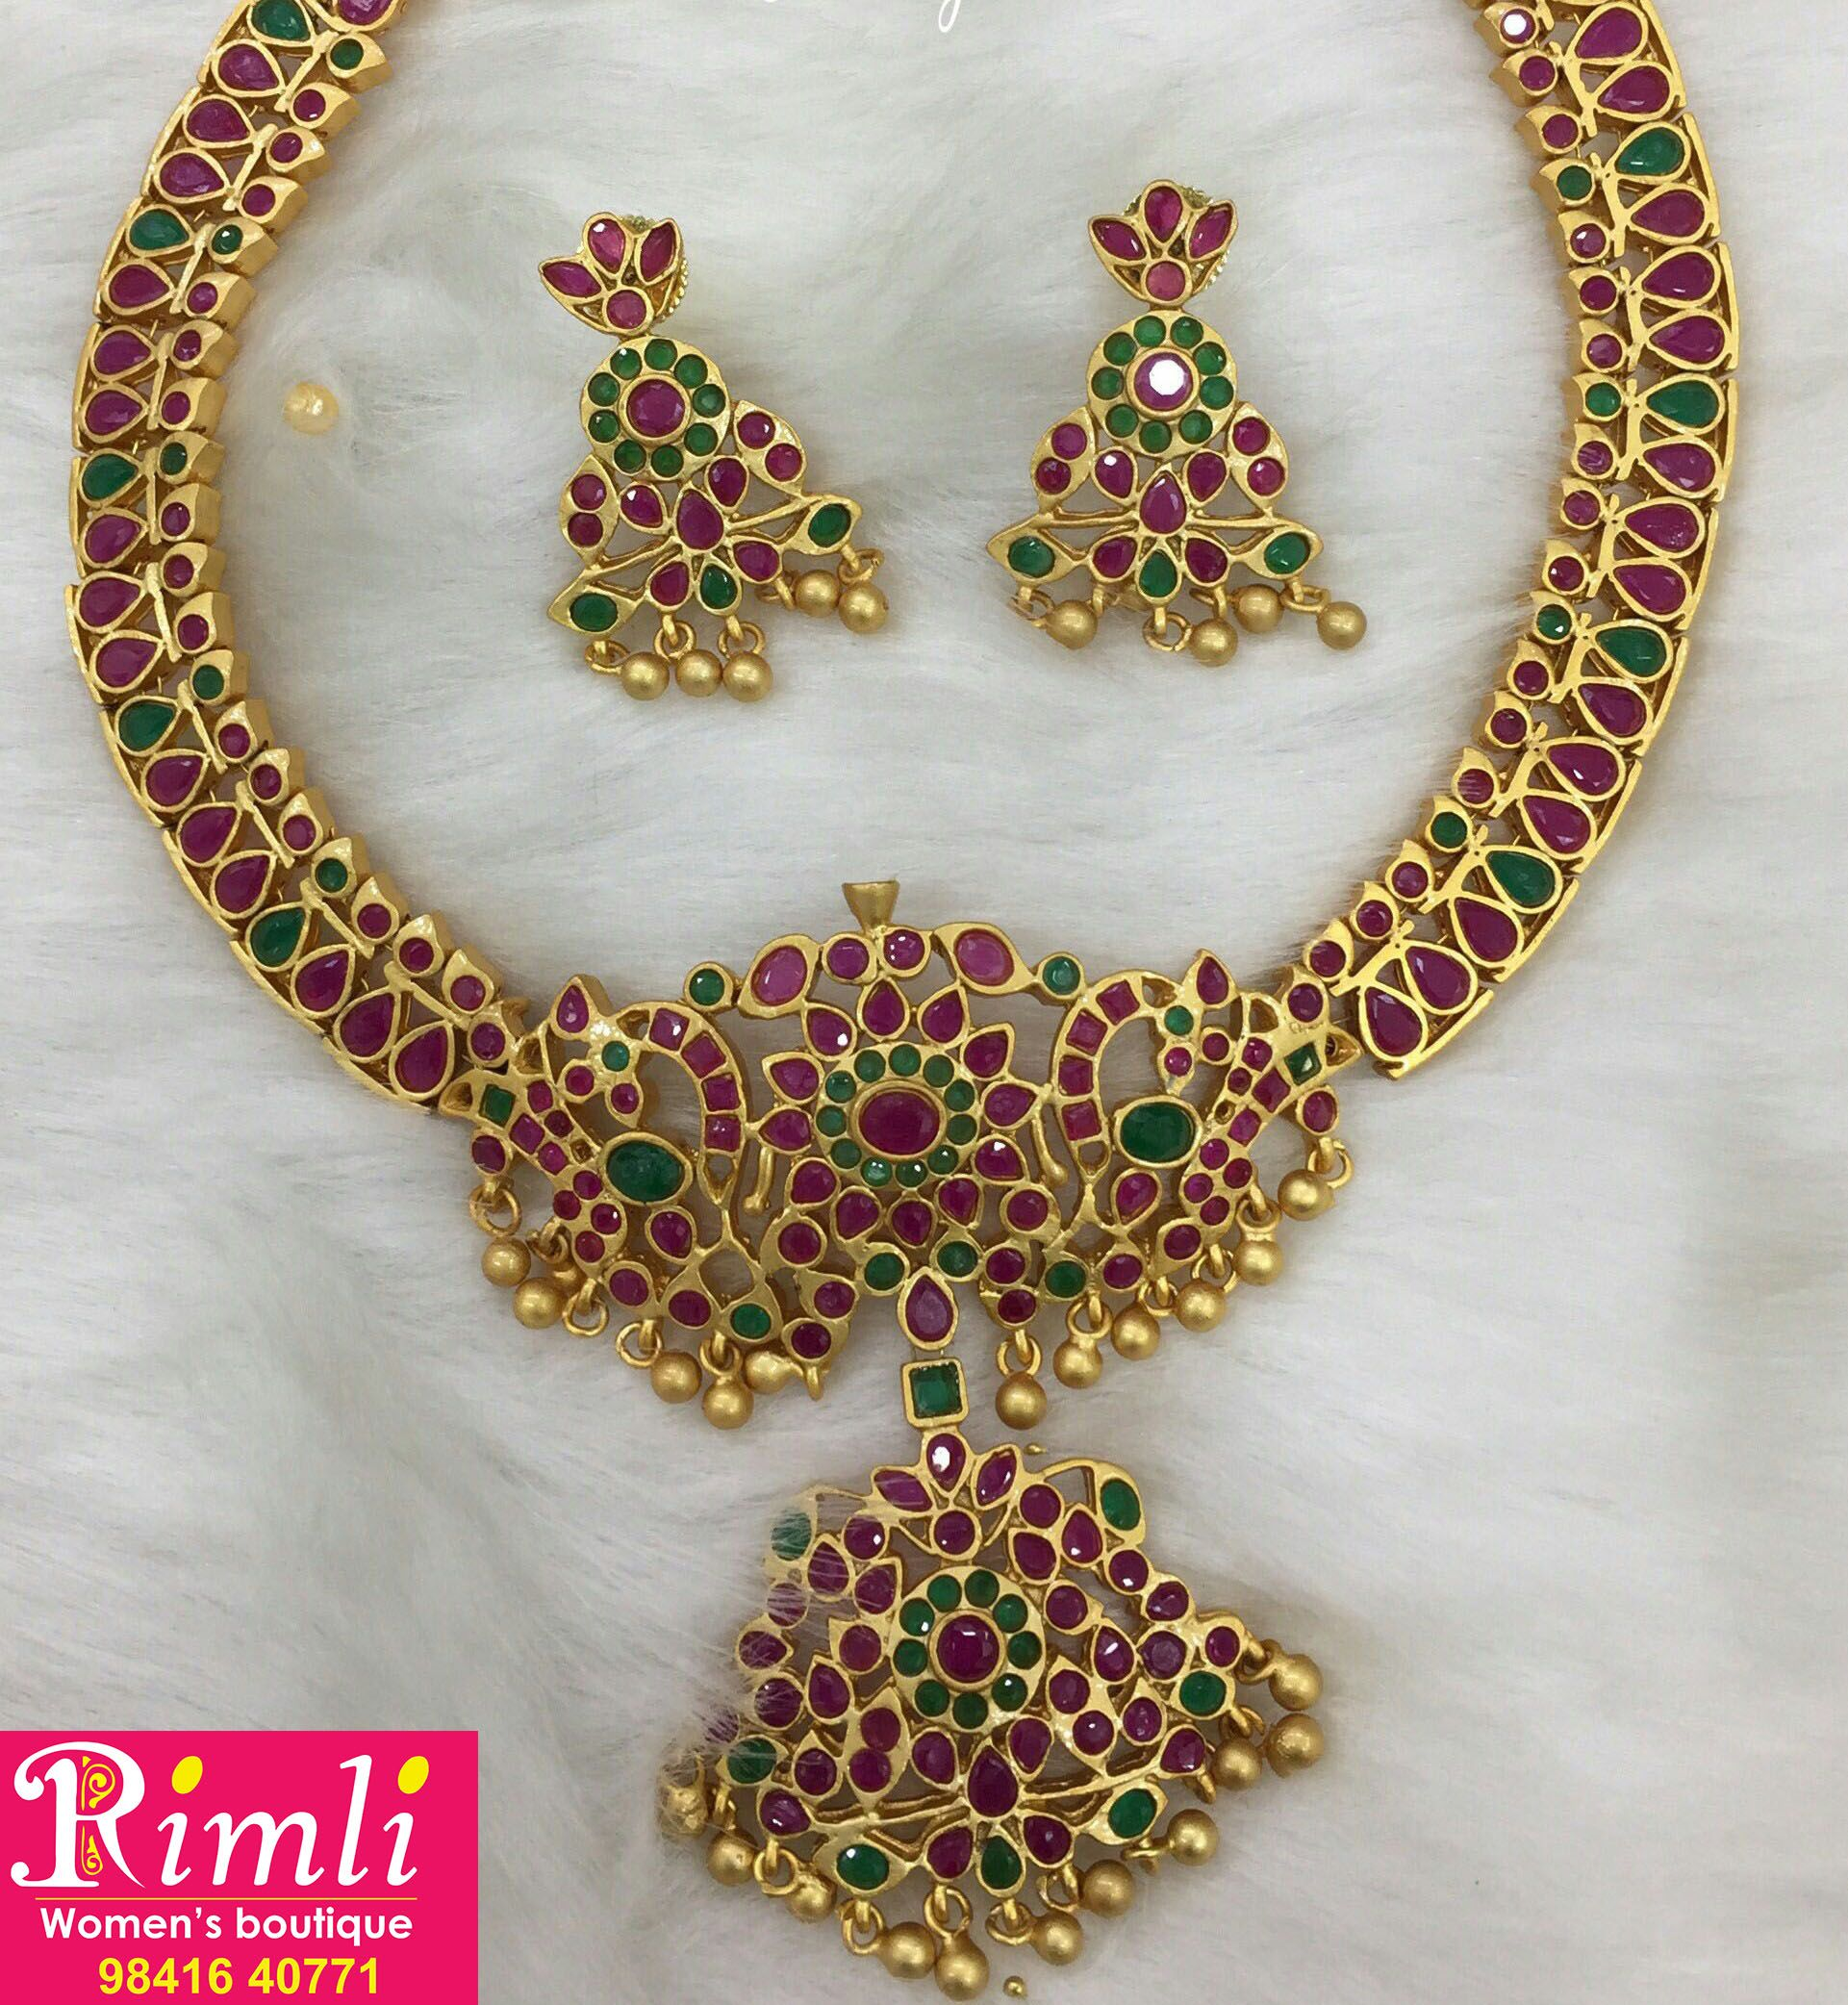 Pin by Rimli Boutique on Indian Jewellery Pinterest Indian